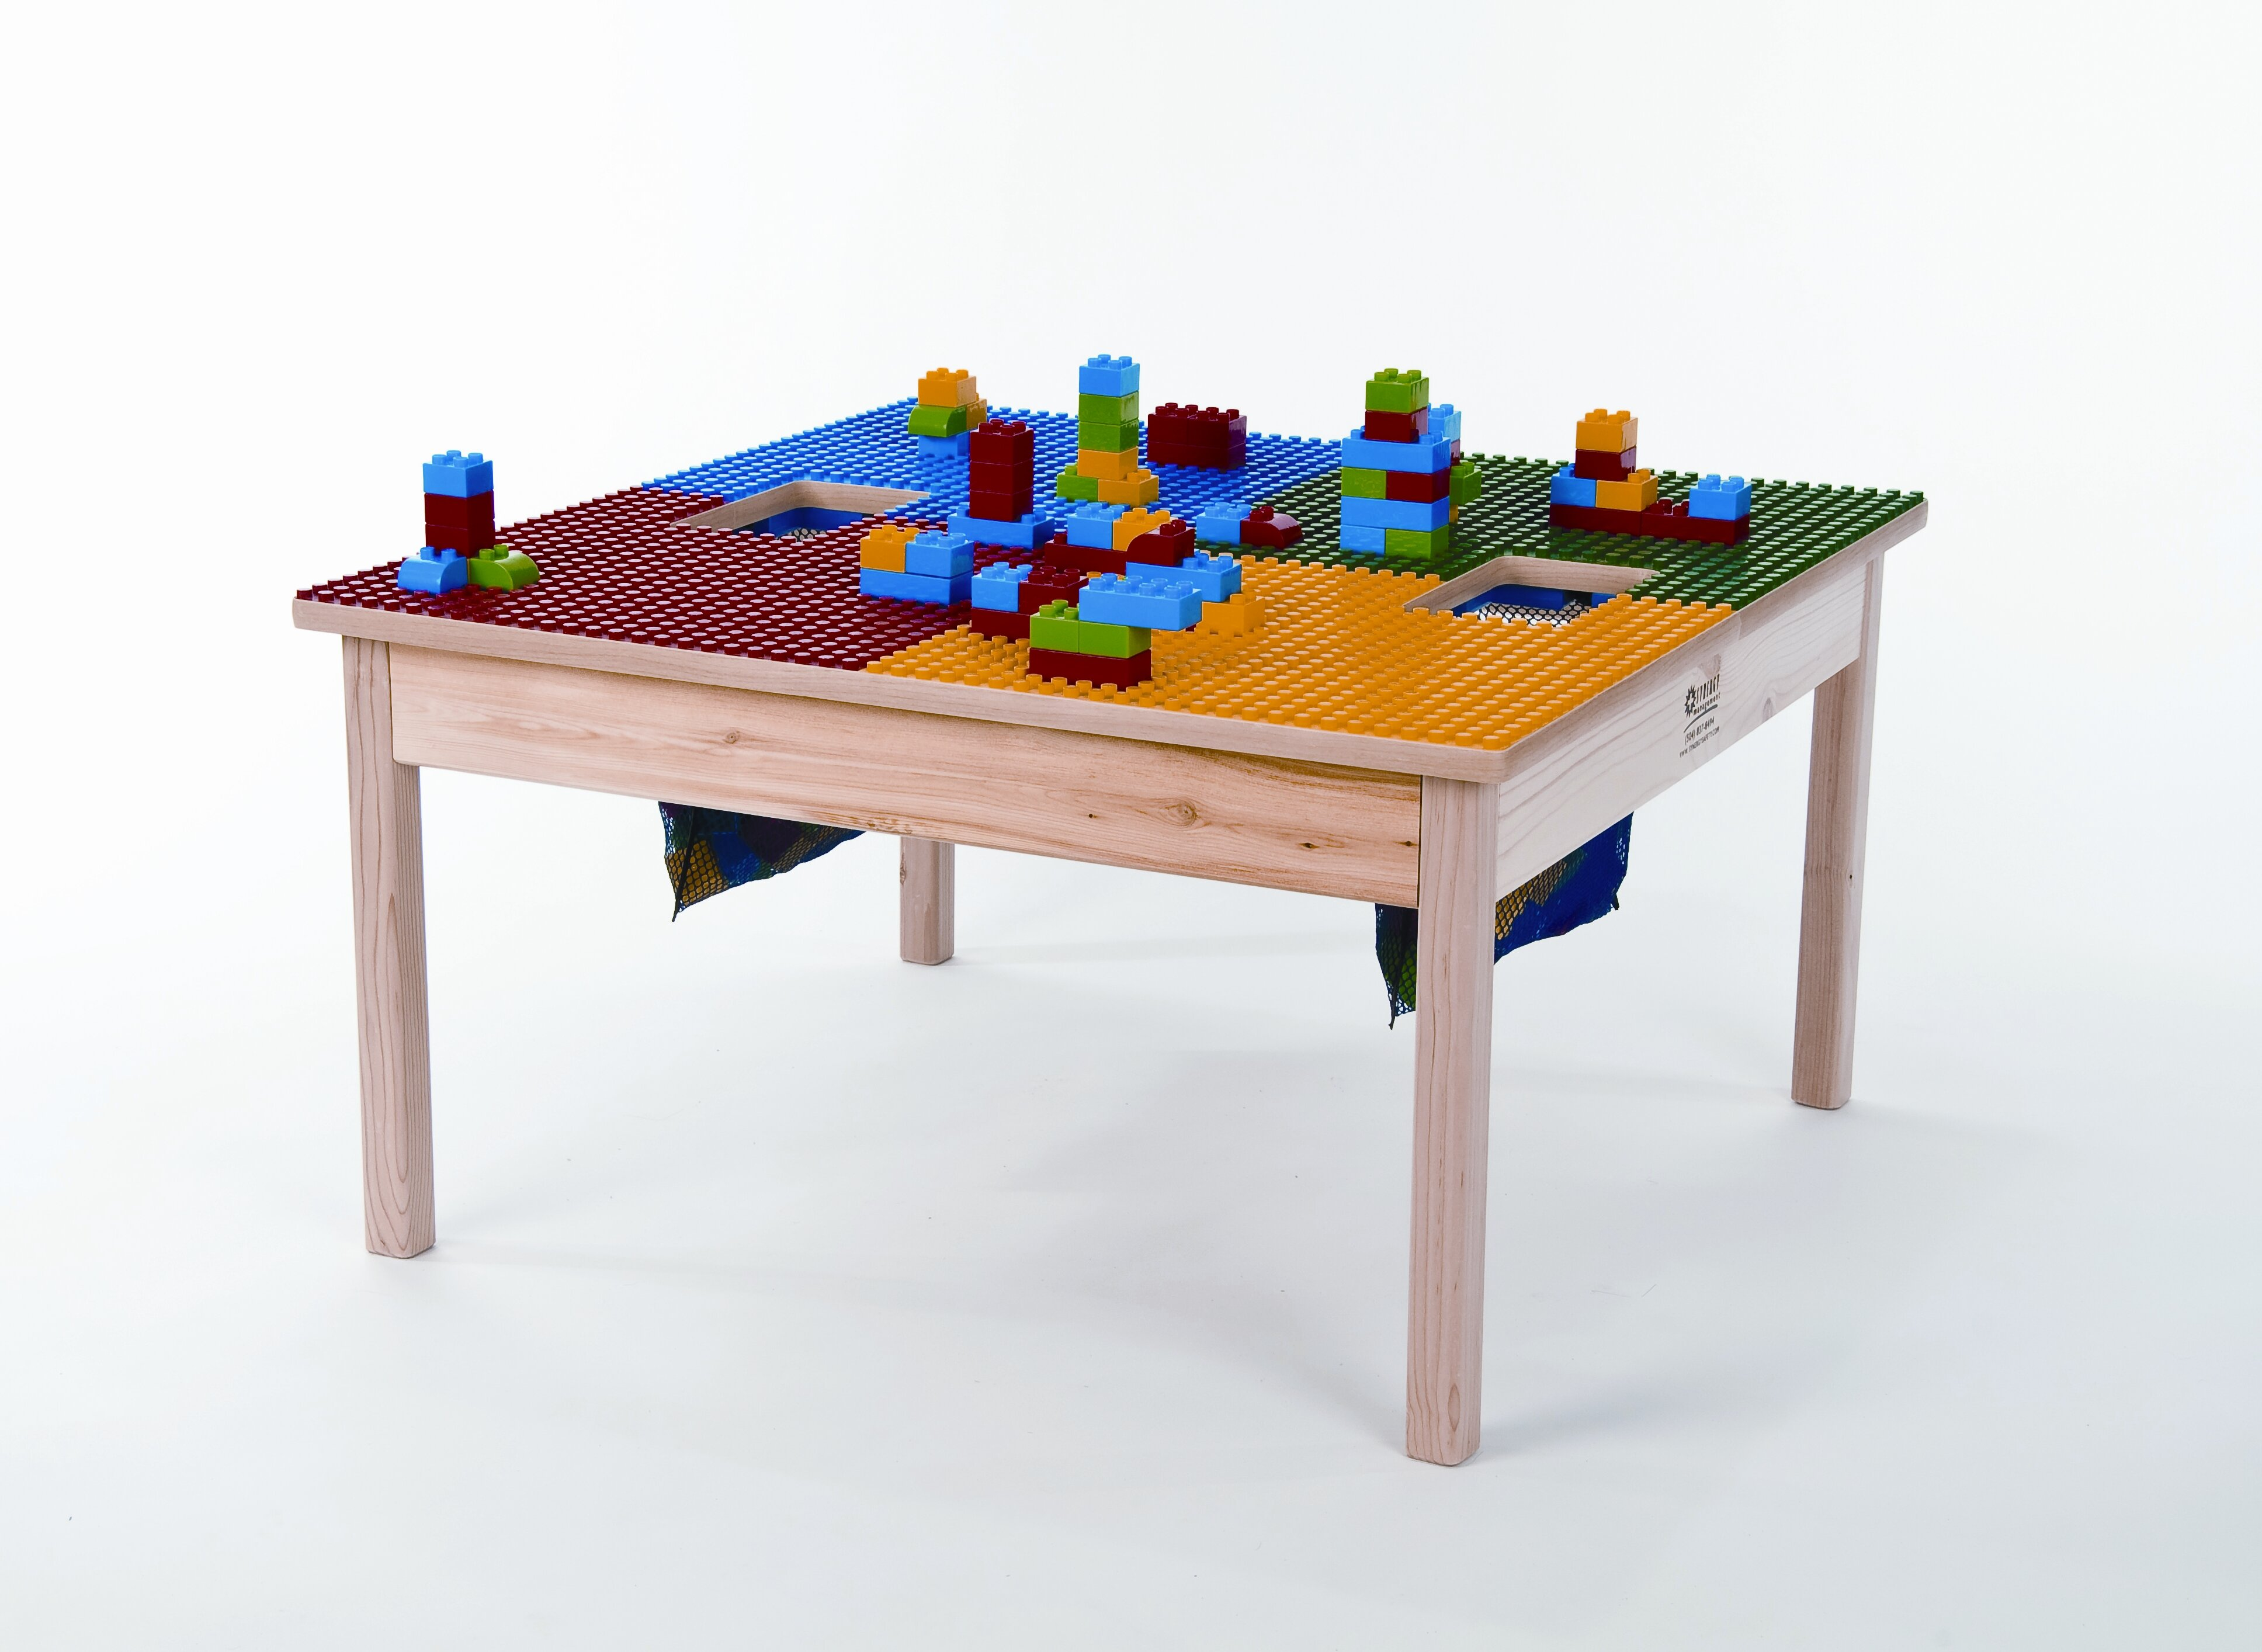 Magnificent Kids Lego Table With Storage Wayfair Download Free Architecture Designs Sospemadebymaigaardcom